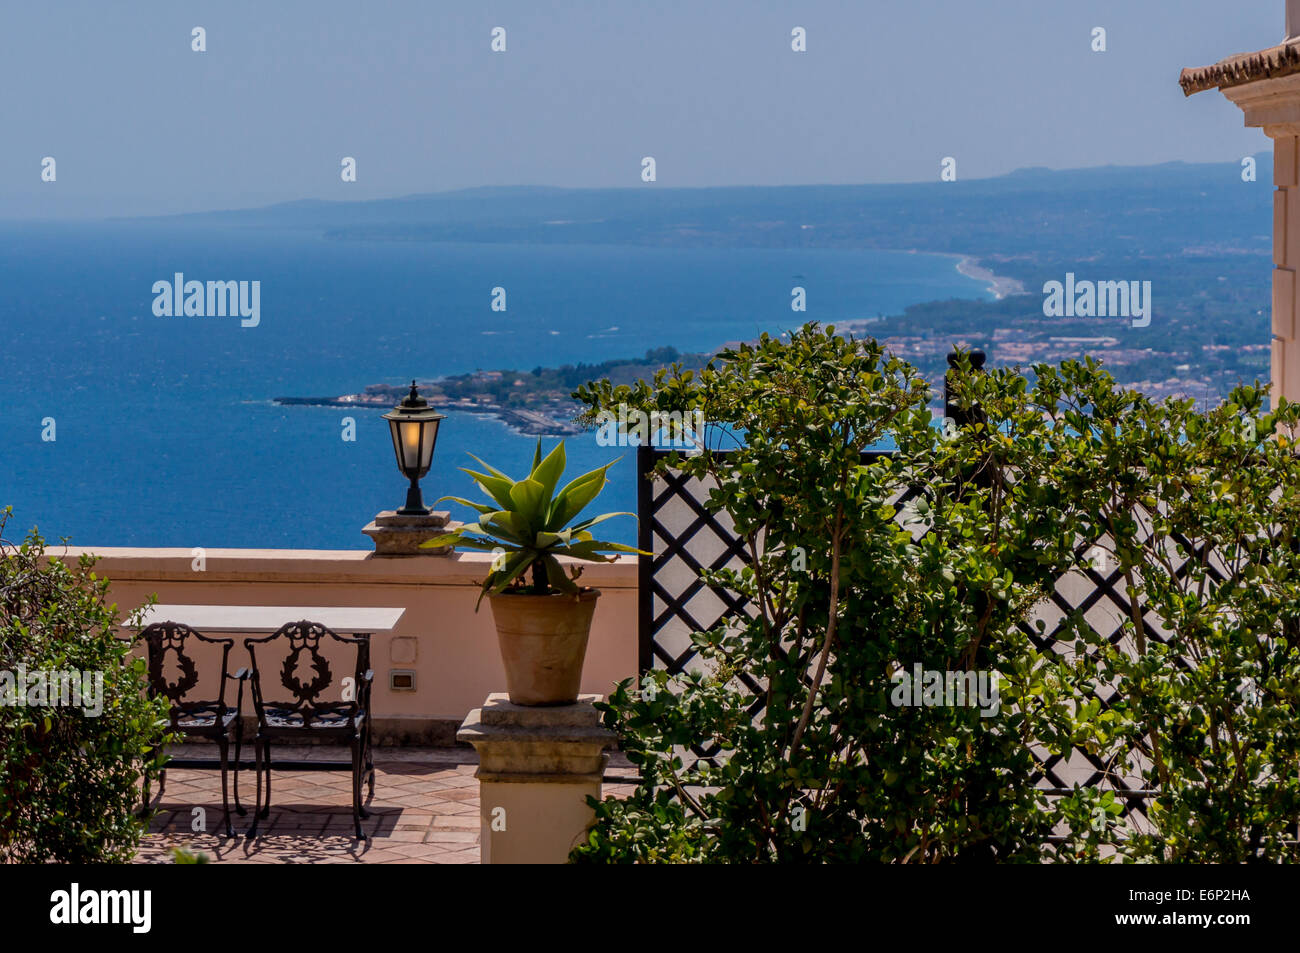 Beautiful view of Sicilian coastline from rooftop terrace - Stock Image